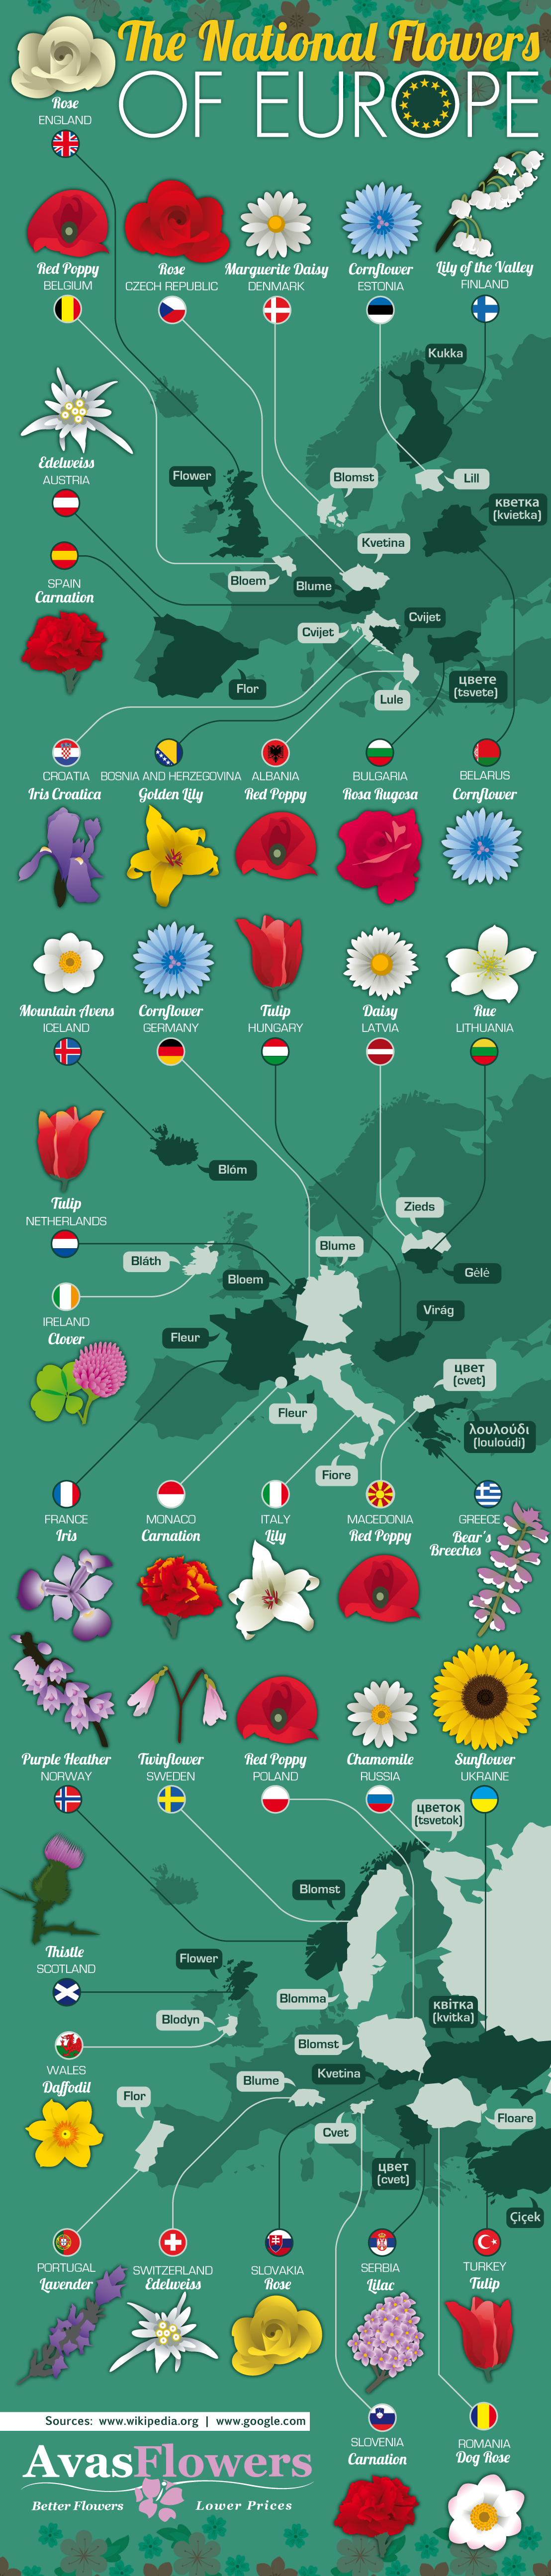 Flowers That Represent European Nations